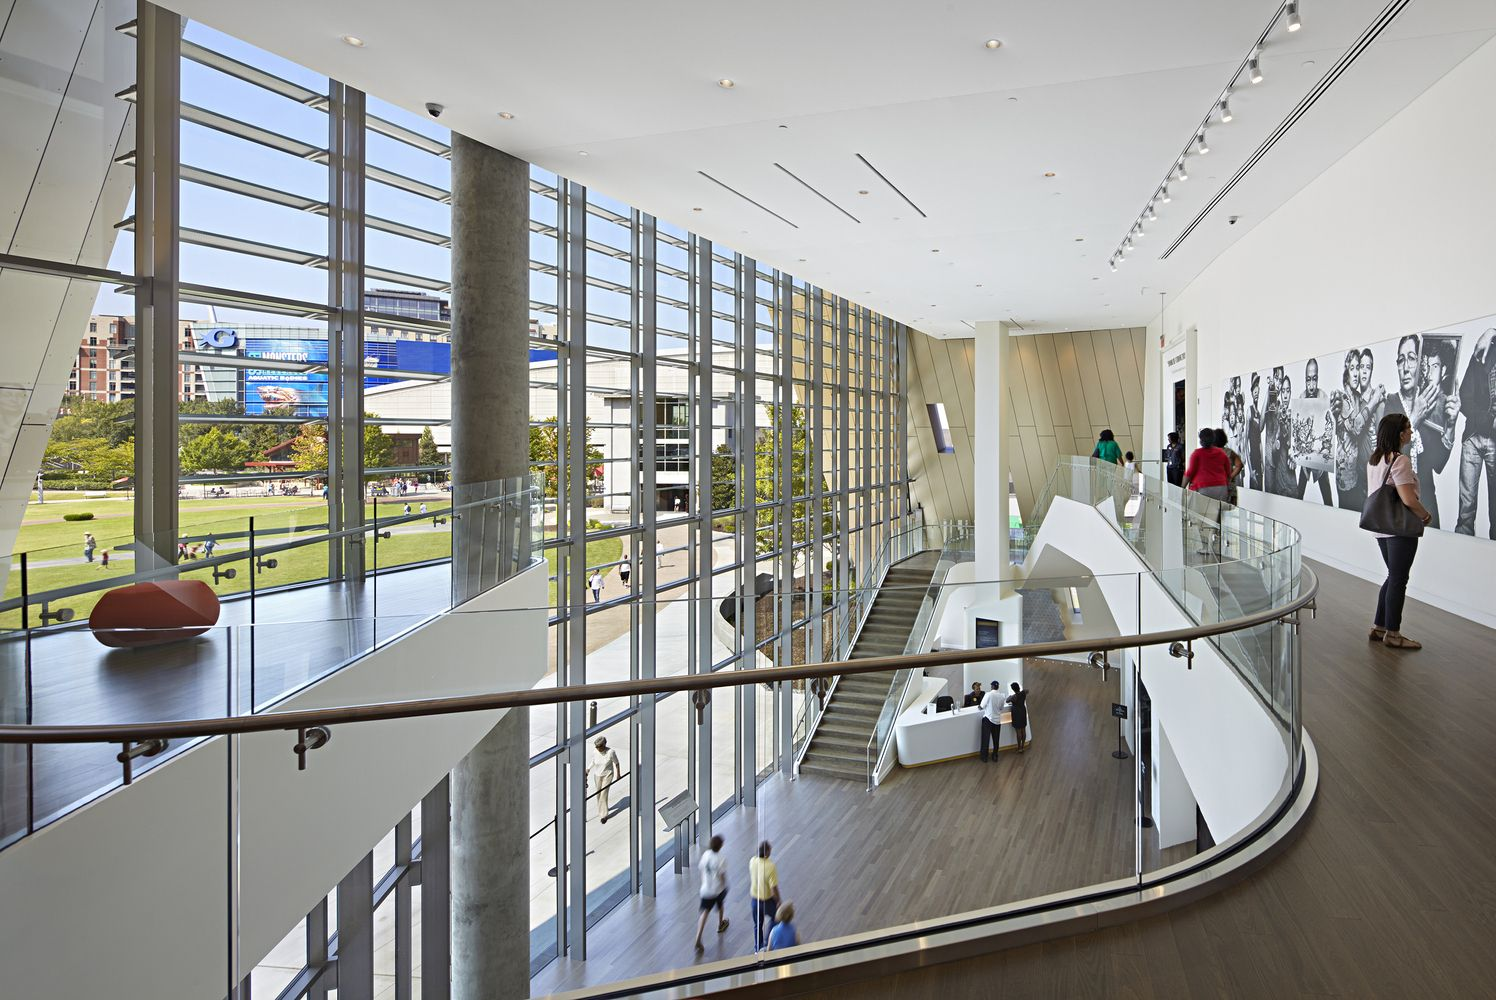 Gallery of National Center for Civil and Human Rights / The Freelon Group (Now part of Perkins+Will) + HOK - 9